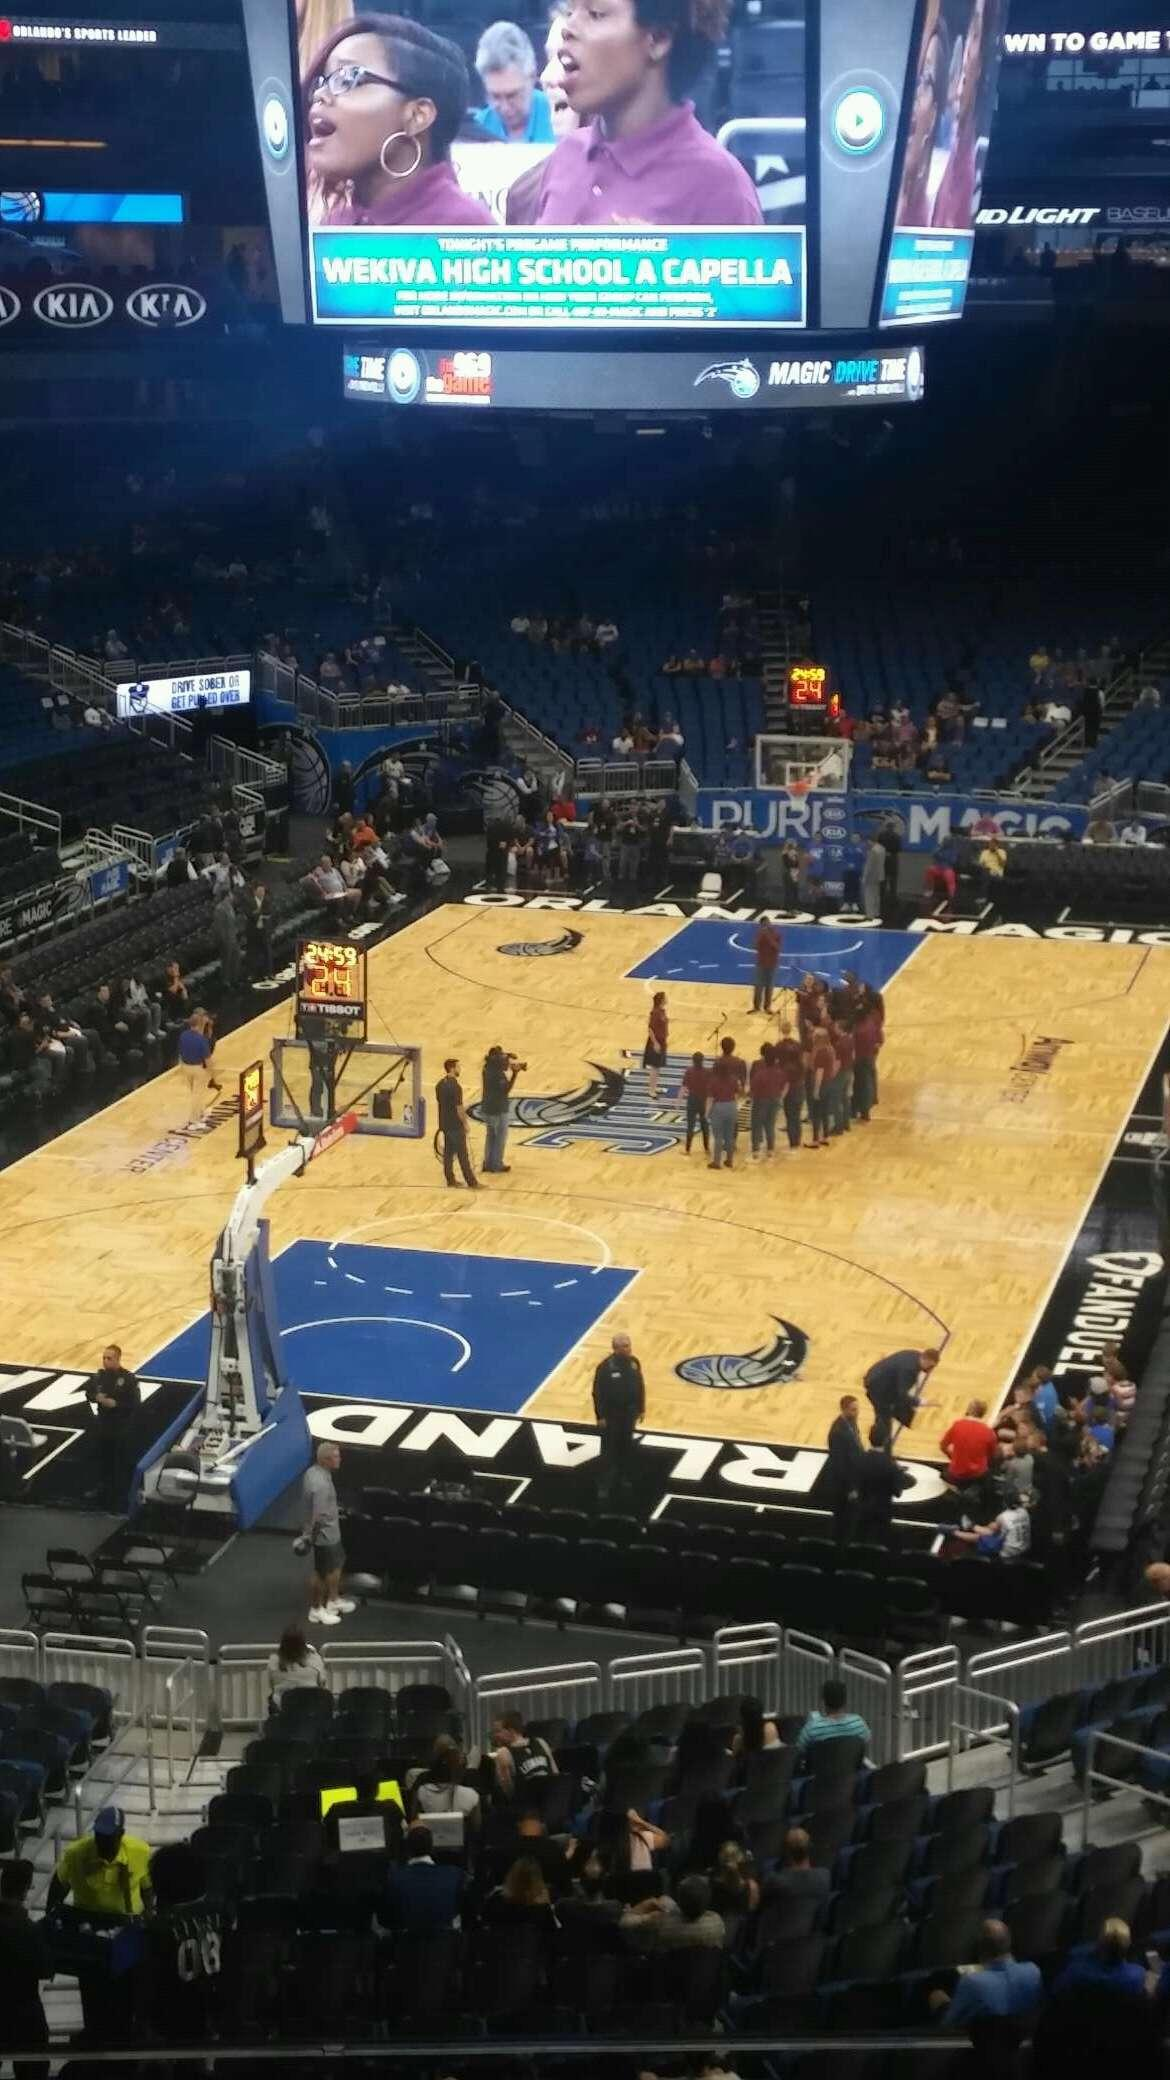 Amway Center Section 109A Row 27 Seat 25-26